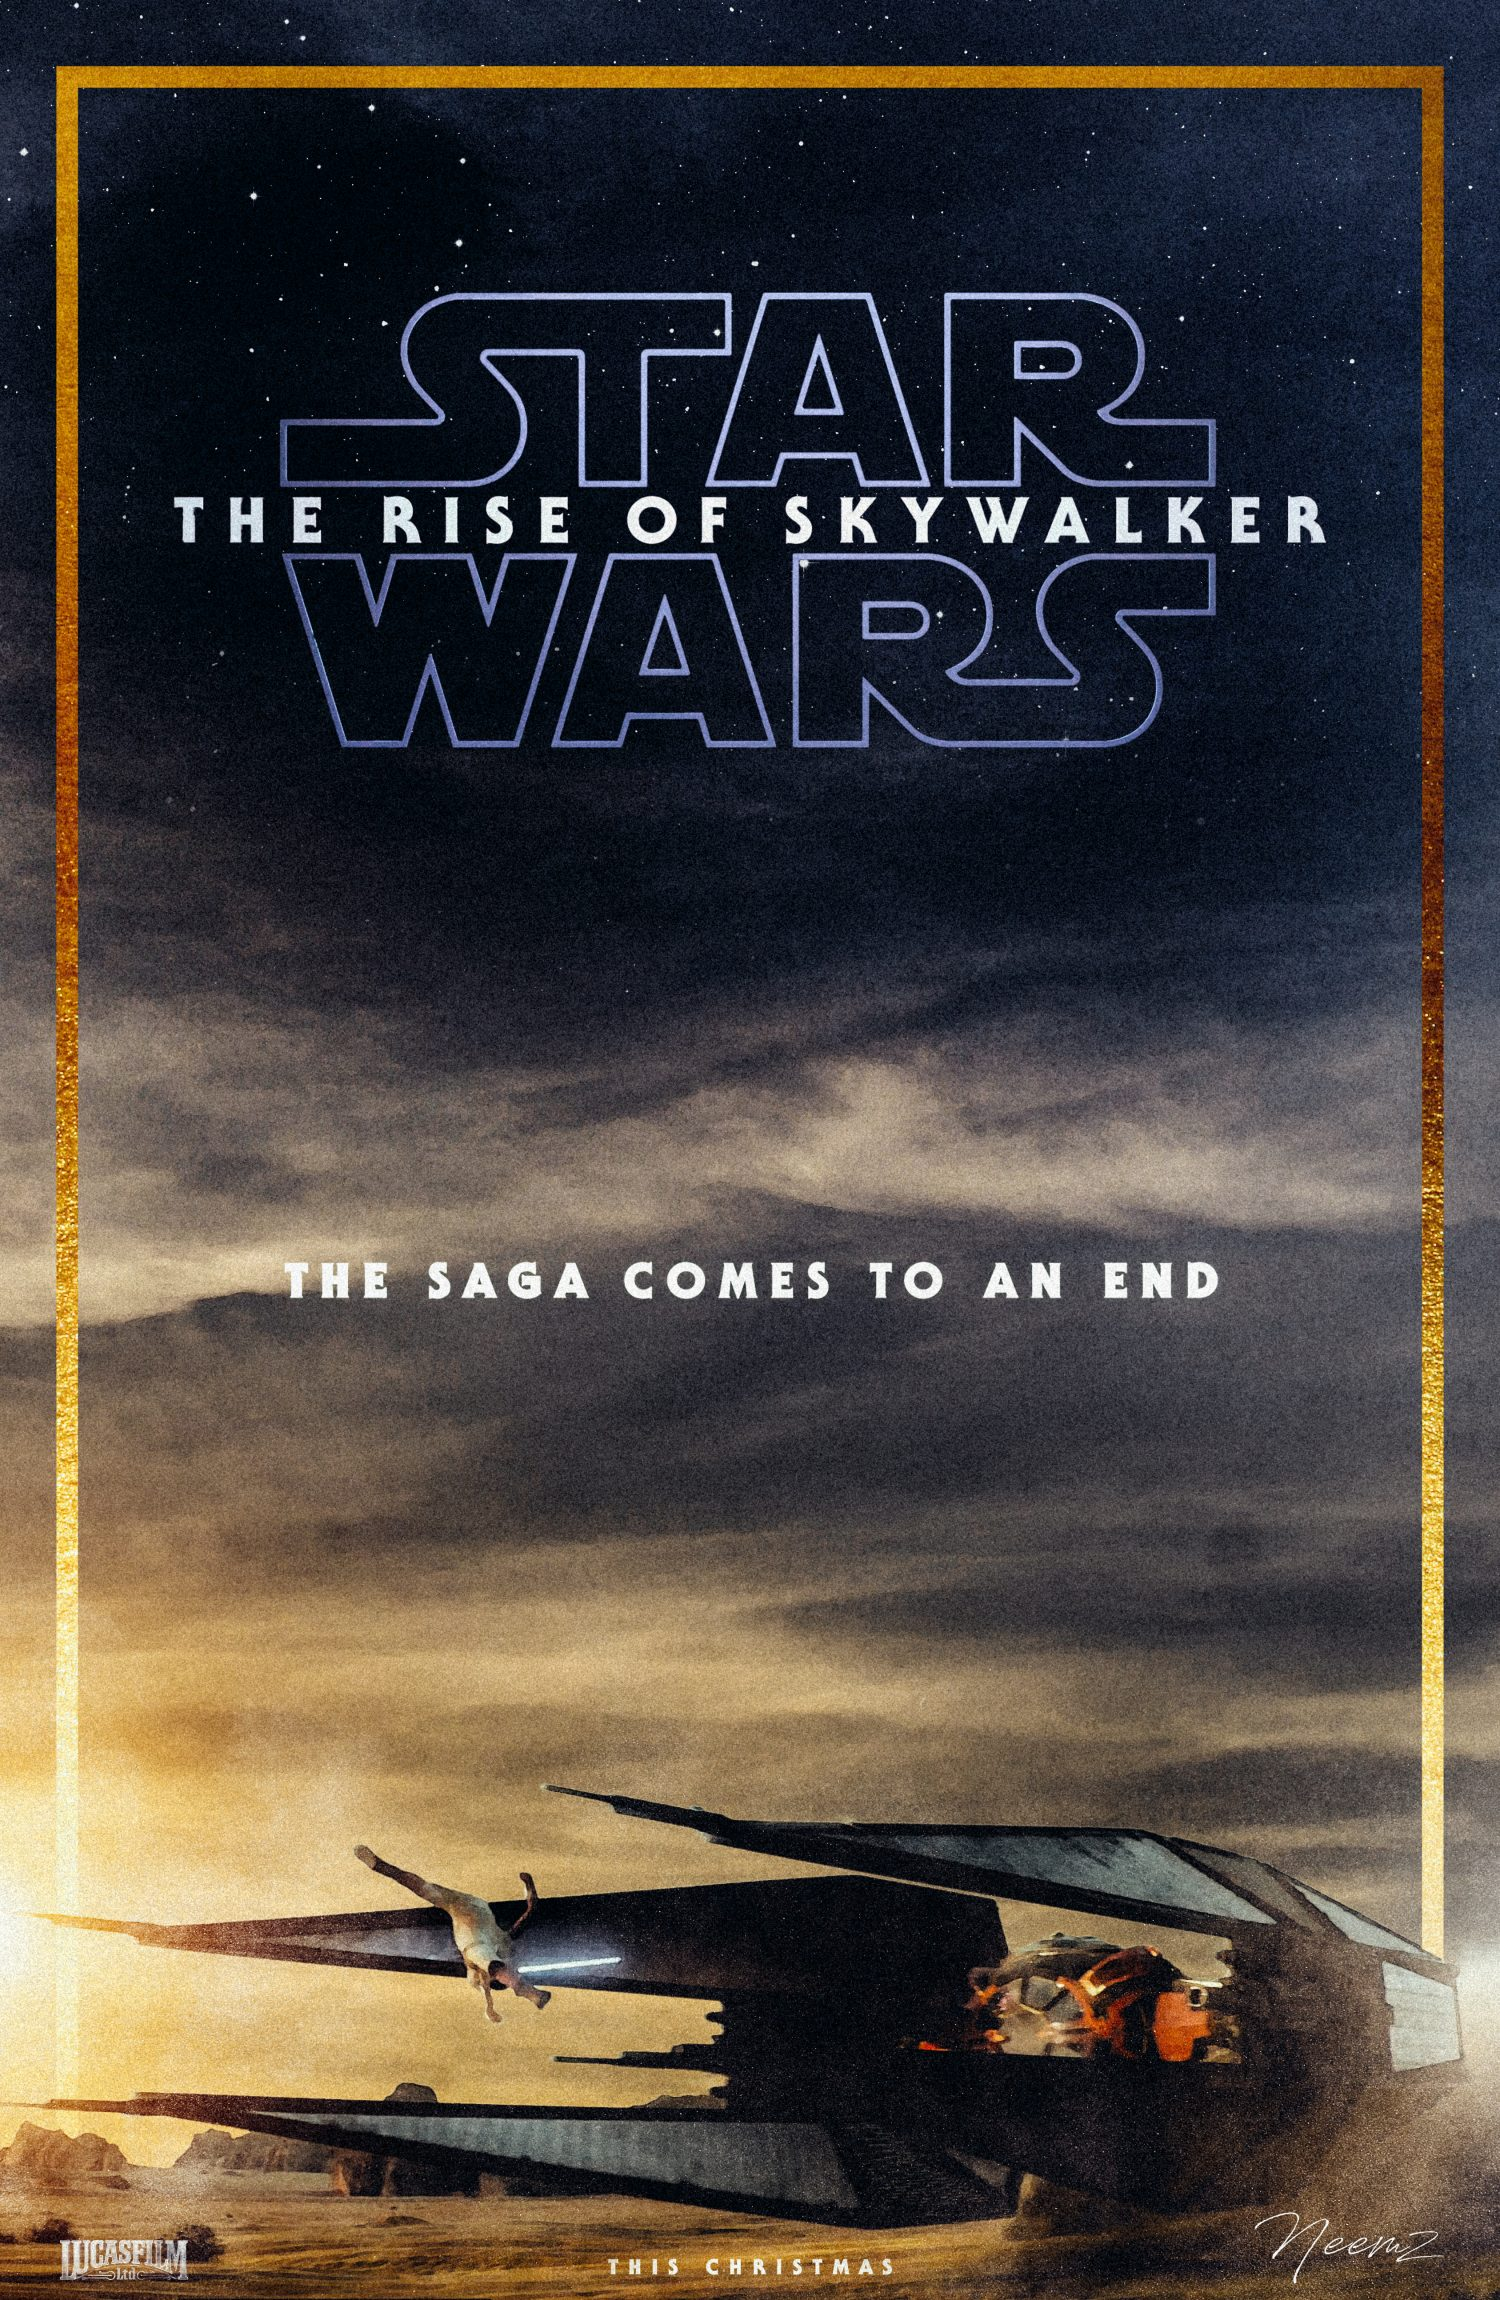 Star Wars Episode Ix The Rise Of Skywalker Movie Poster Posterspy